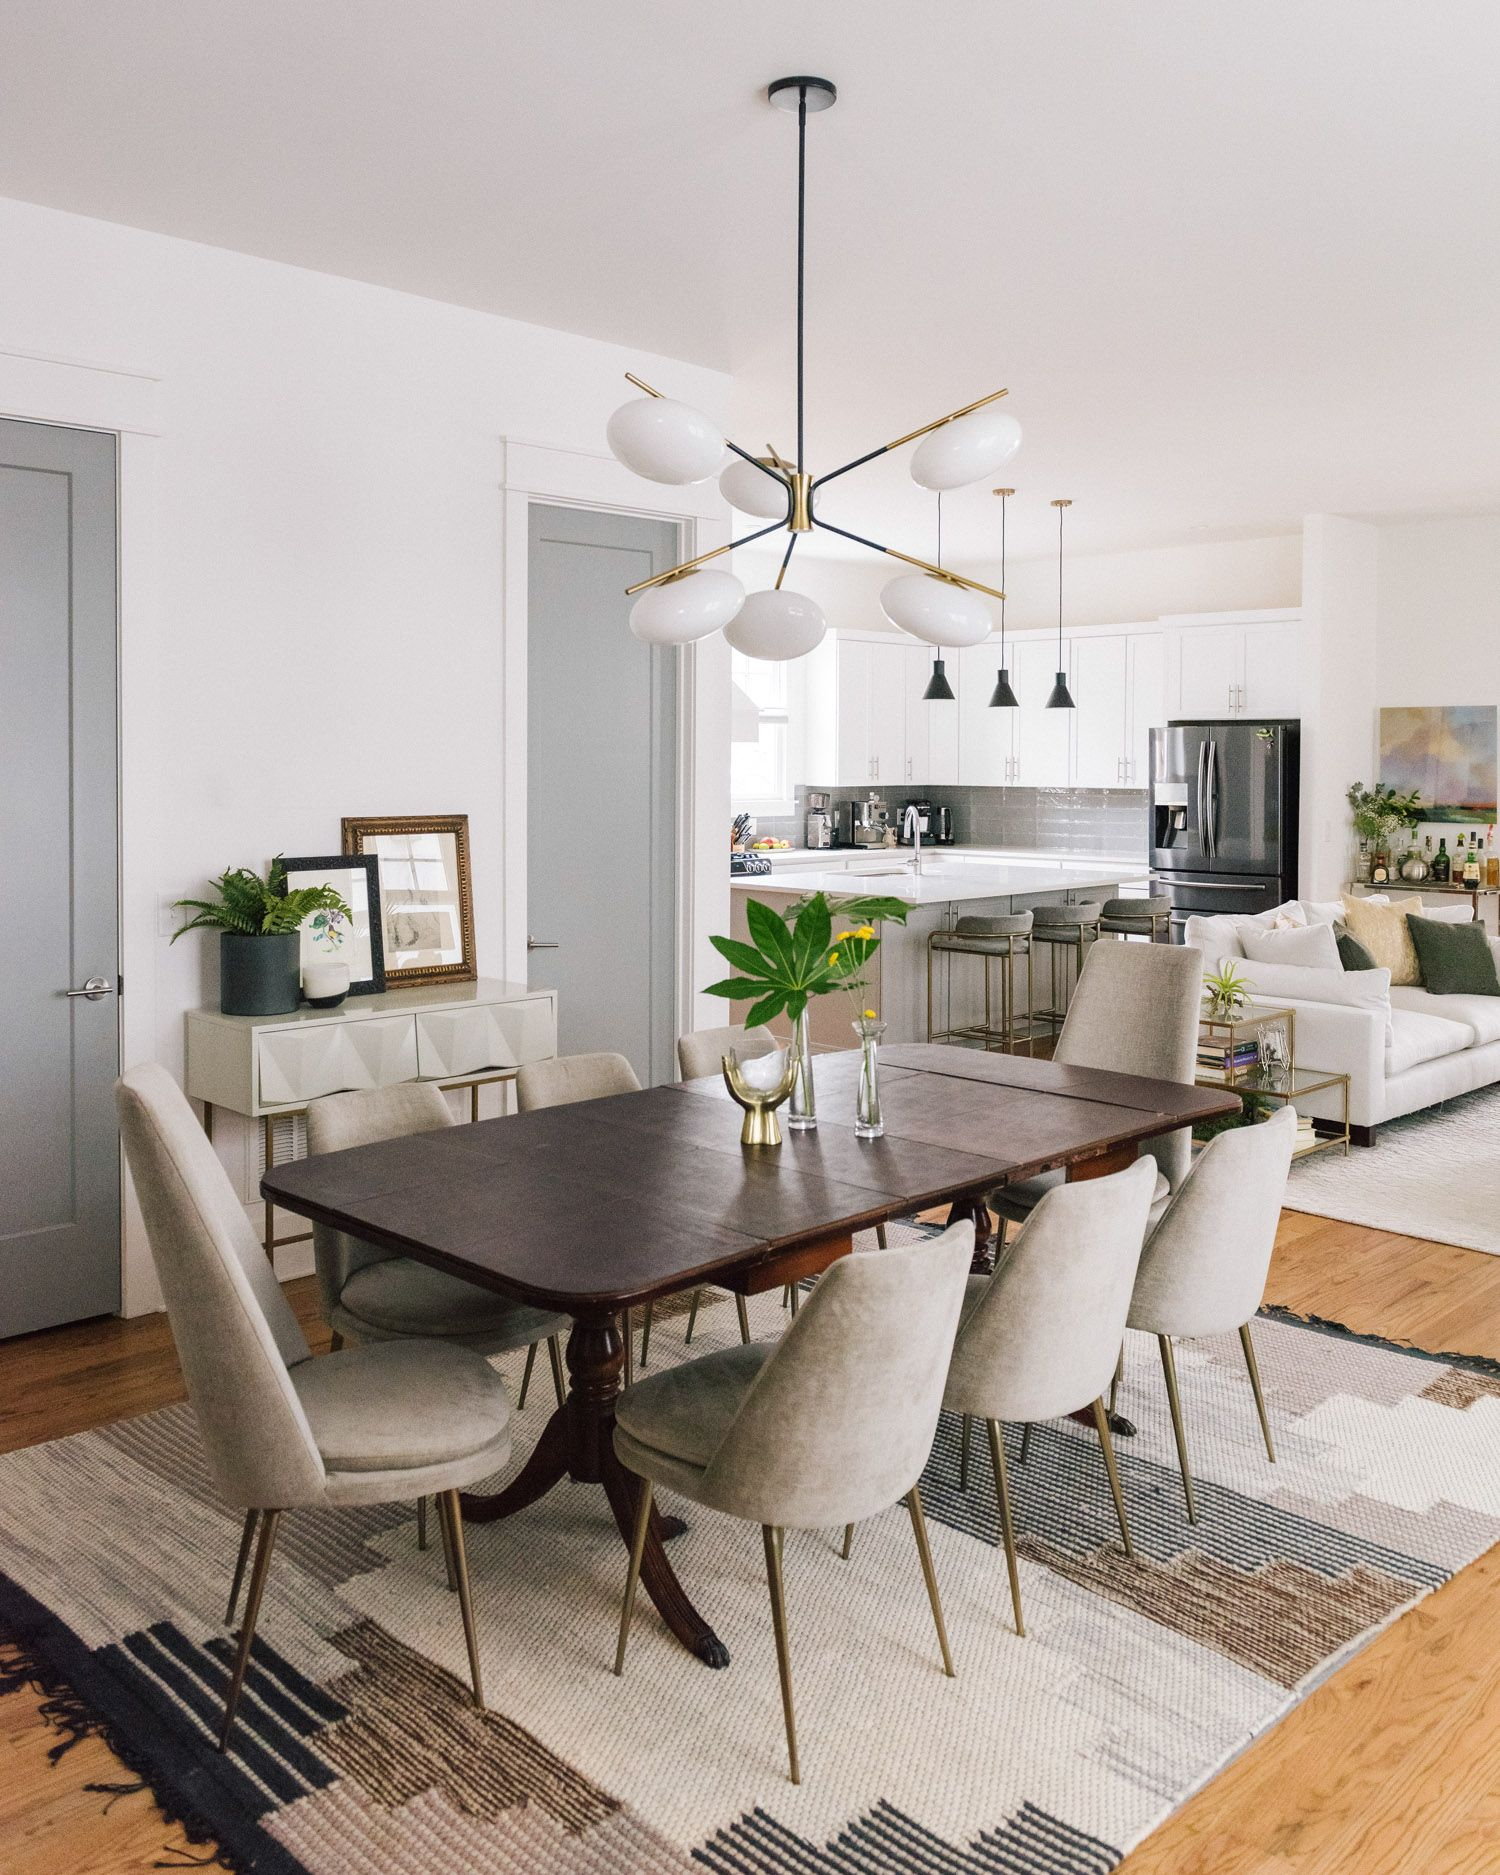 Having The Dining Area Open To The Living Room Allows For An Extended Table If There Are West Elm Dining Table Decor Home Living Room Antique Dining Room Table